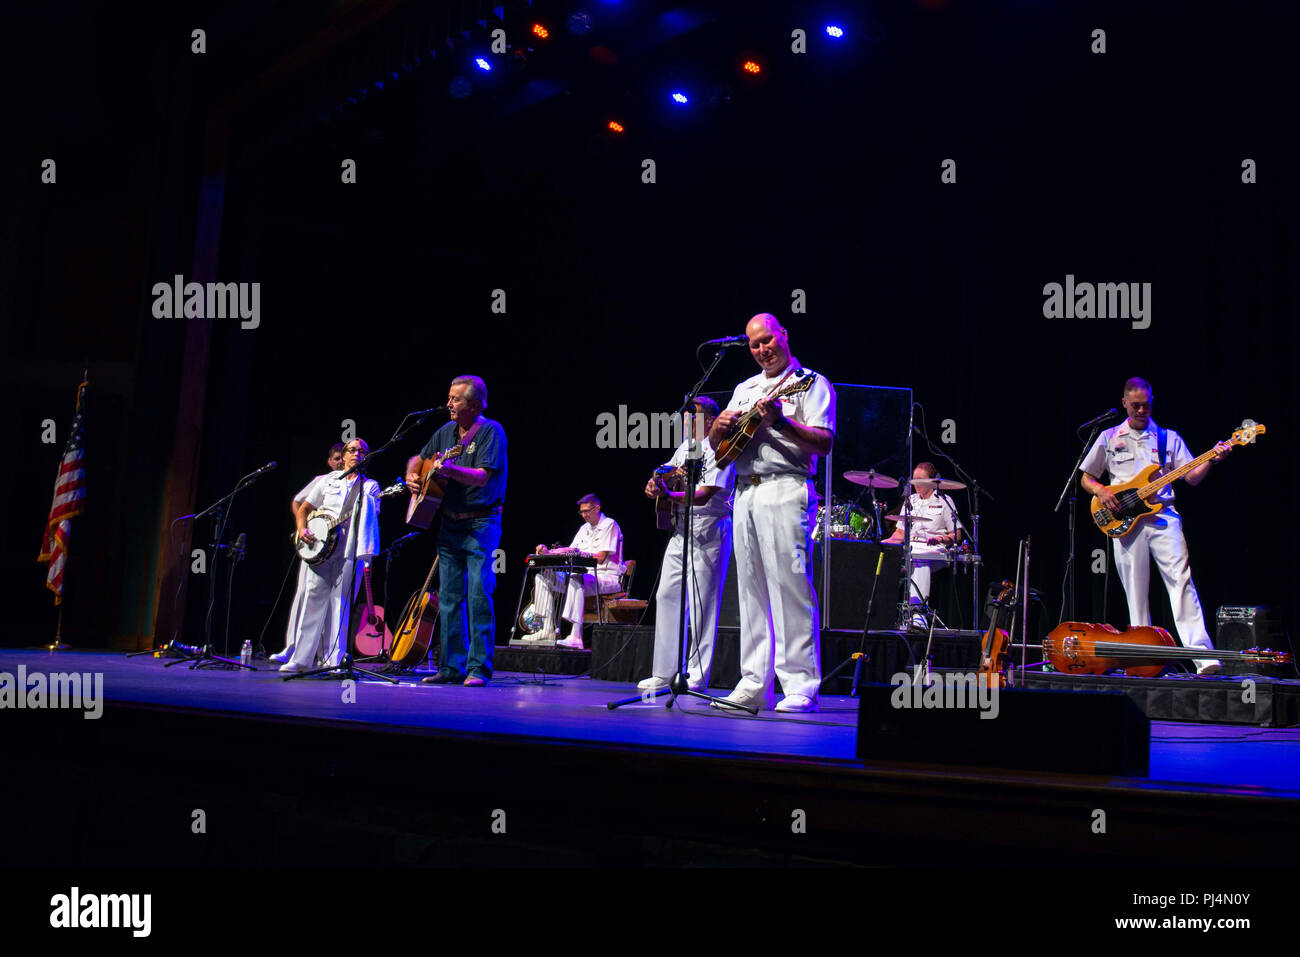 180830-N-NW255-1011 FRANKLIN, N.C. (Aug. 30, 2018) The U.S. Navy Band Country Current performs for a packed house at the Smoky Mountain Center for the Performing Arts,  joined by a former band member, retired Musician 1st Class Ben Winter. Country Current is on a 1,600 mile tour through Virginia, North Carolina, Georgia and Florida, which allows Navy musicians to entertain audiences in parts of the country that don't often get to see the Navy at work. (U.S. Navy photo by Senior Chief Musician Melissa Bishop/Released) Stock Photo